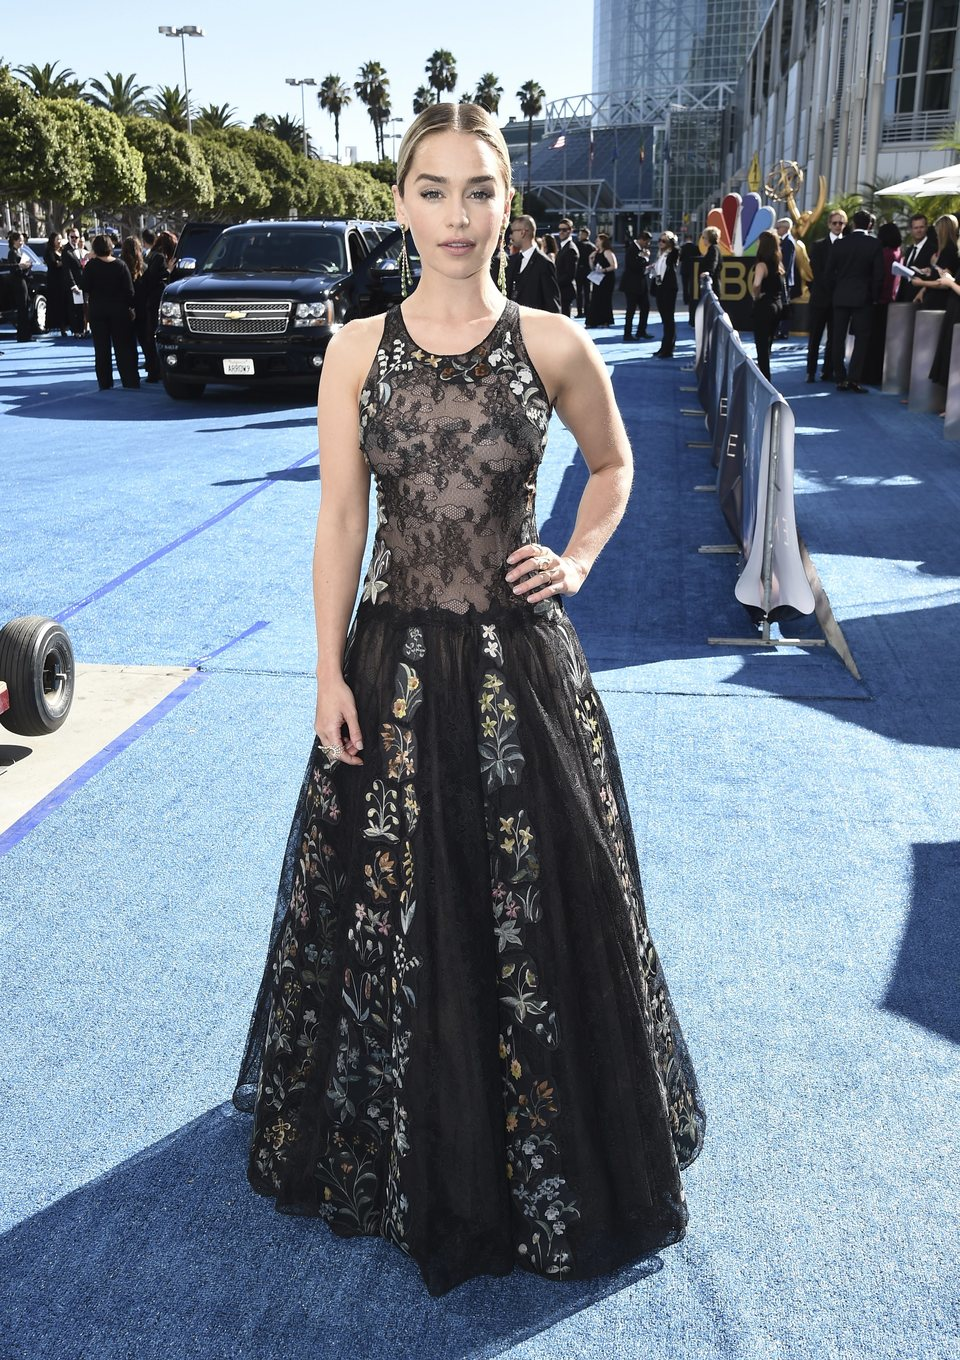 Emilia Clarke at the Emmys 2018 red carpet